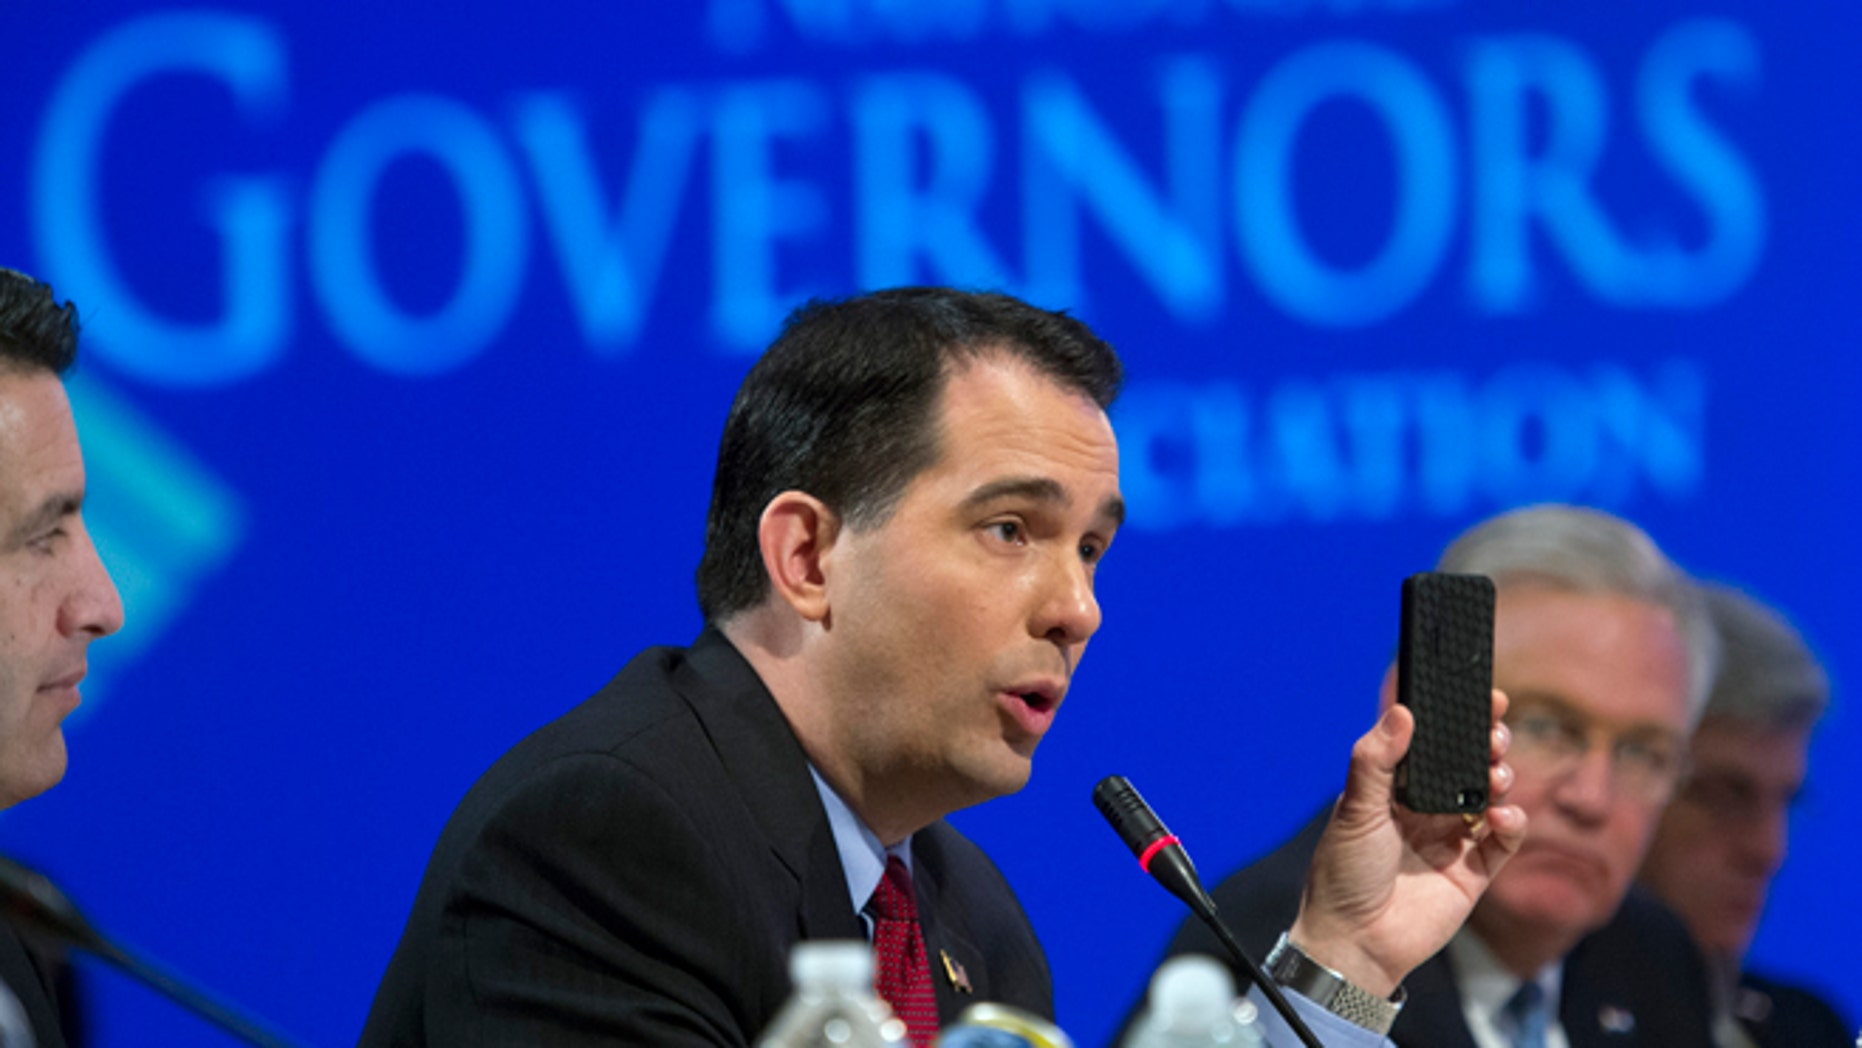 Feb. 23, 2014: Wisconsin Gov. Scott Walker uses a cellphone to illustrate a point about health care plans during a special session on jobs in America during the National Governor's Association Winter Meeting in Washington.